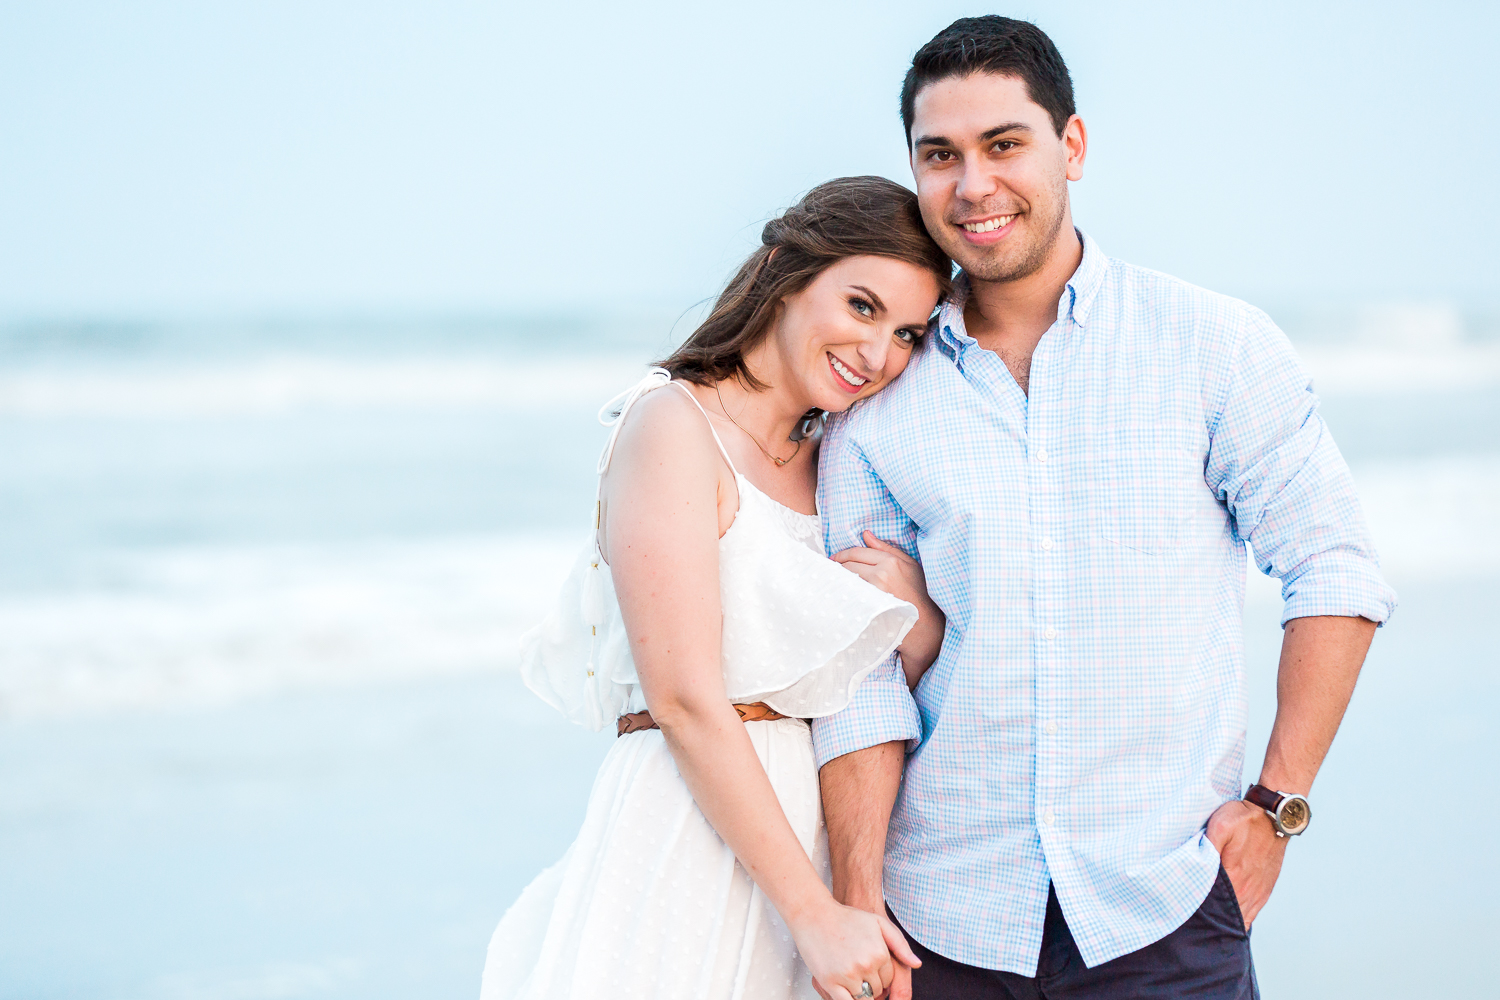 couple hugging during their engagement photoshoot at the beach